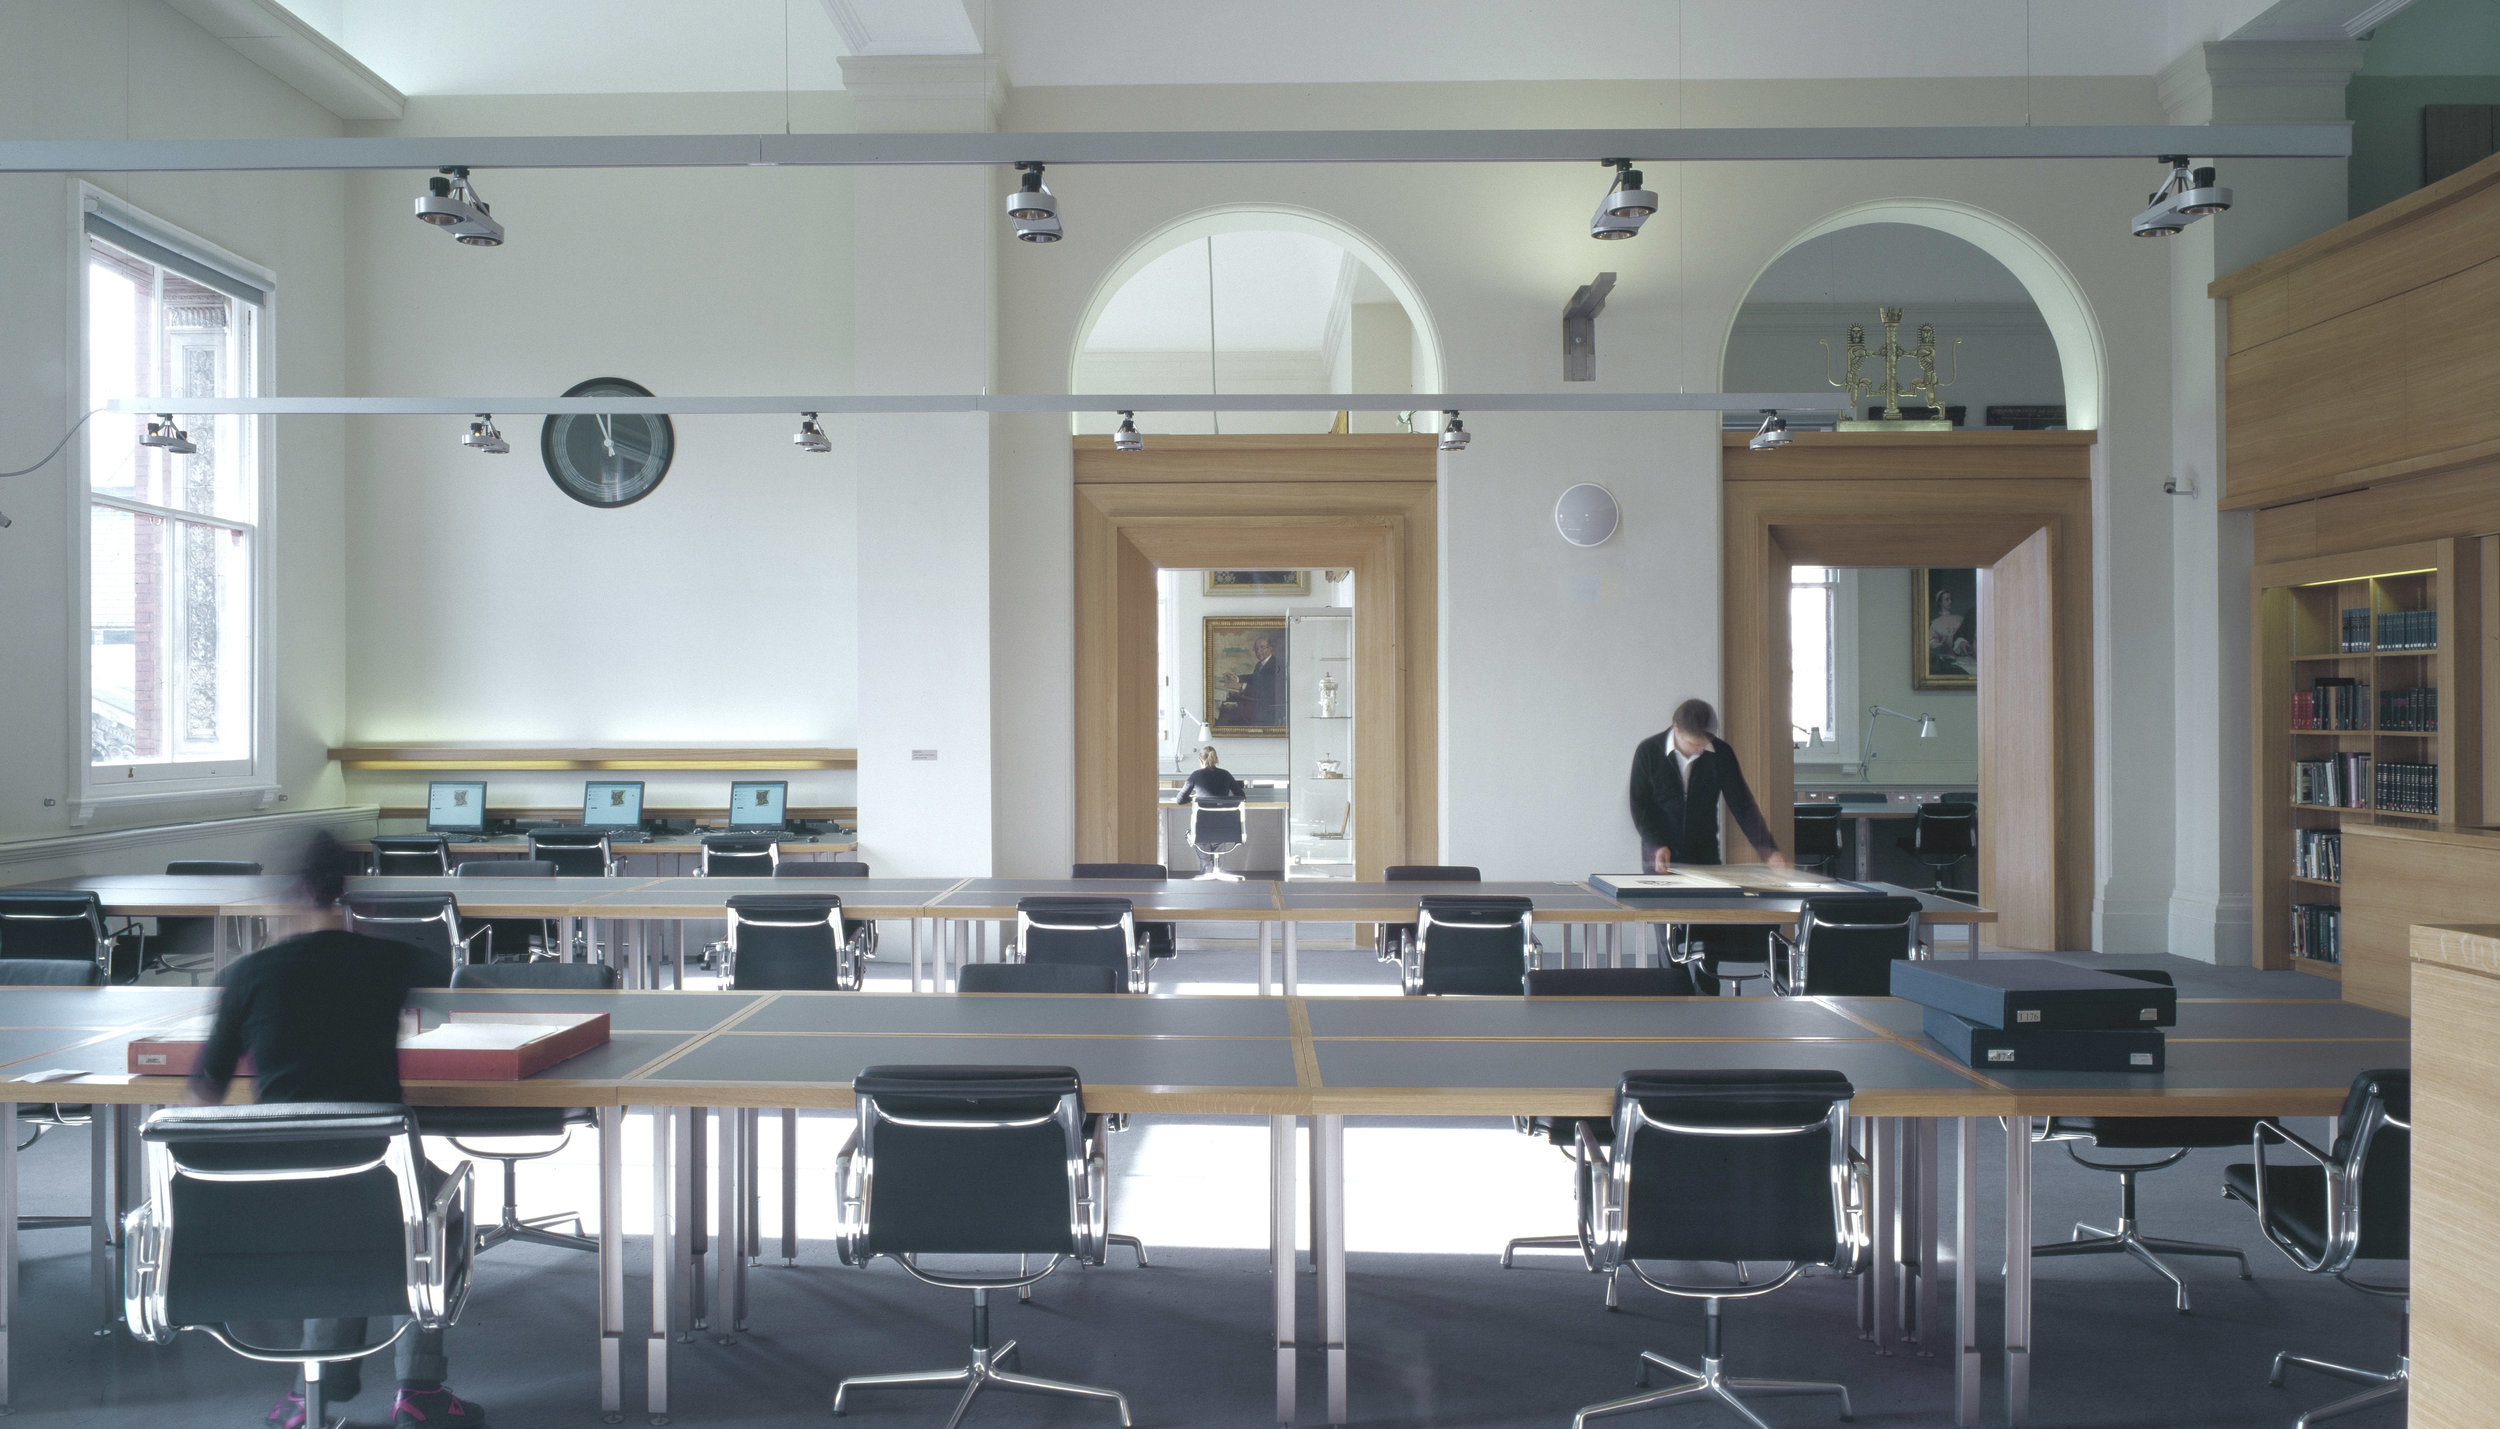 V&A / RIBA Study Rooms -